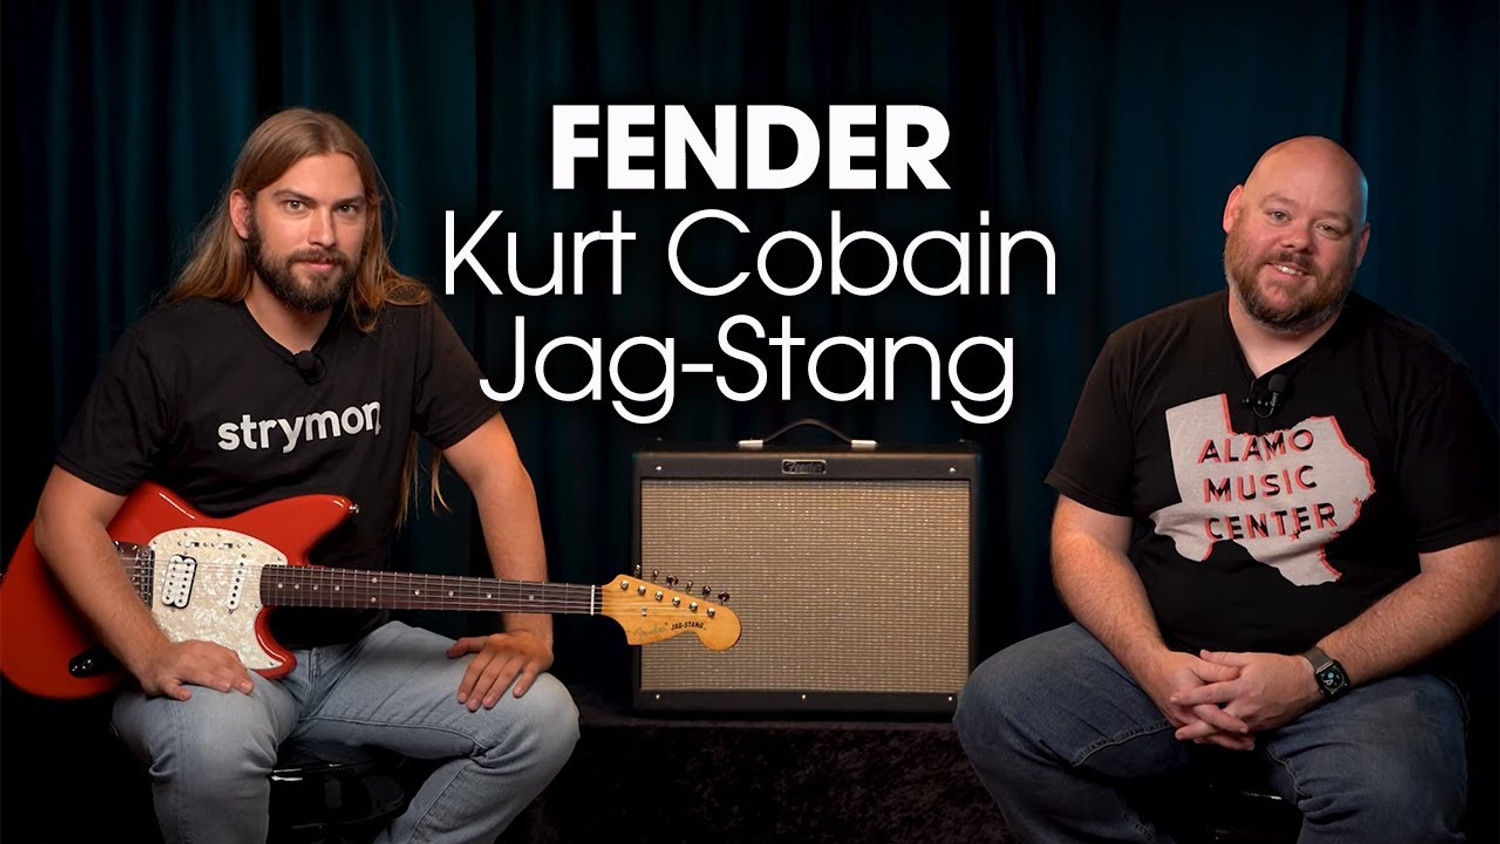 The Fender Kurt Cobain Jag-Stang | The Classic is Back!